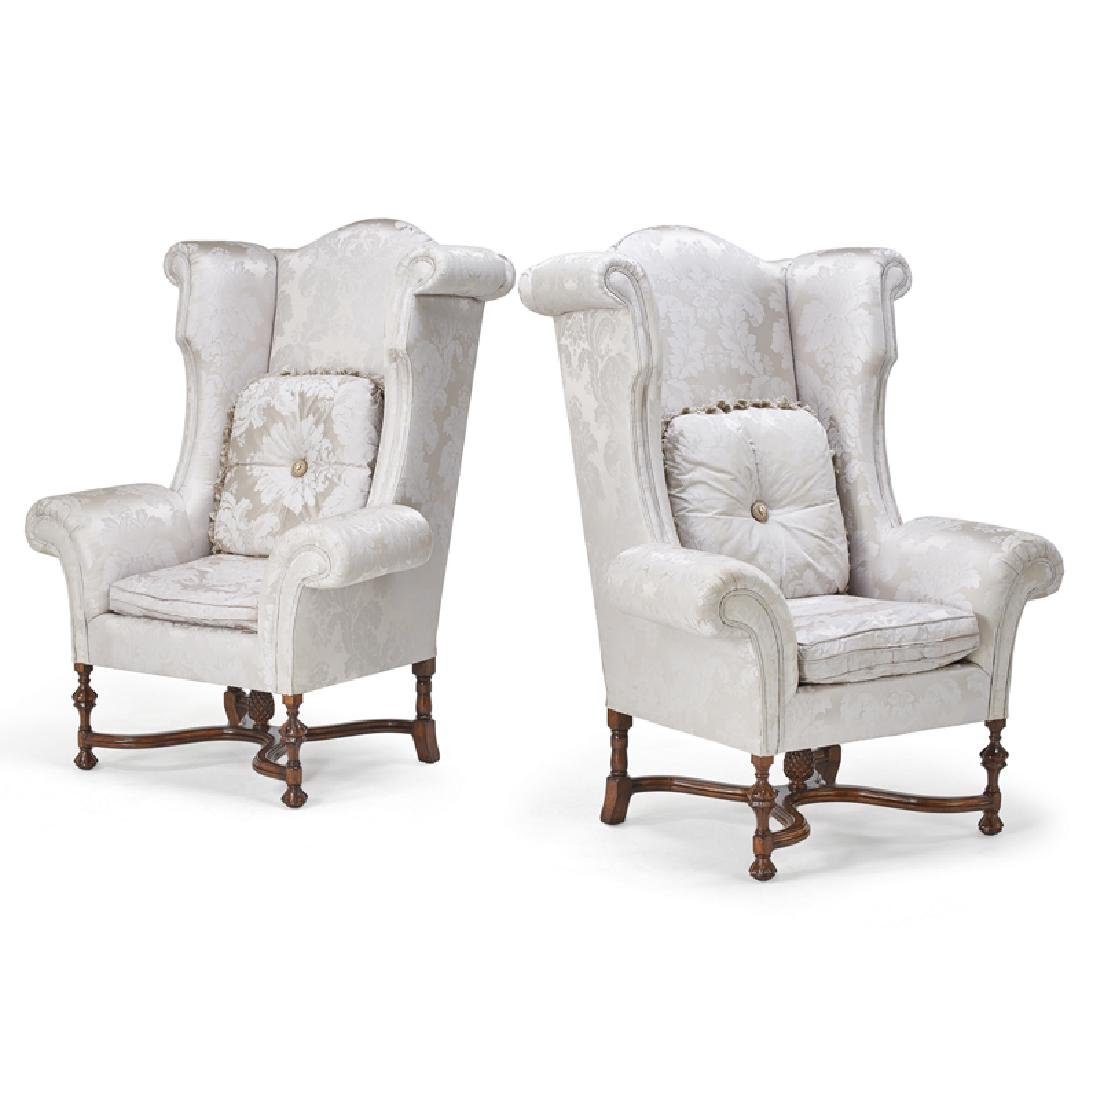 PAIR OF WILLIAM AND MARY STYLE WING CHAIRS